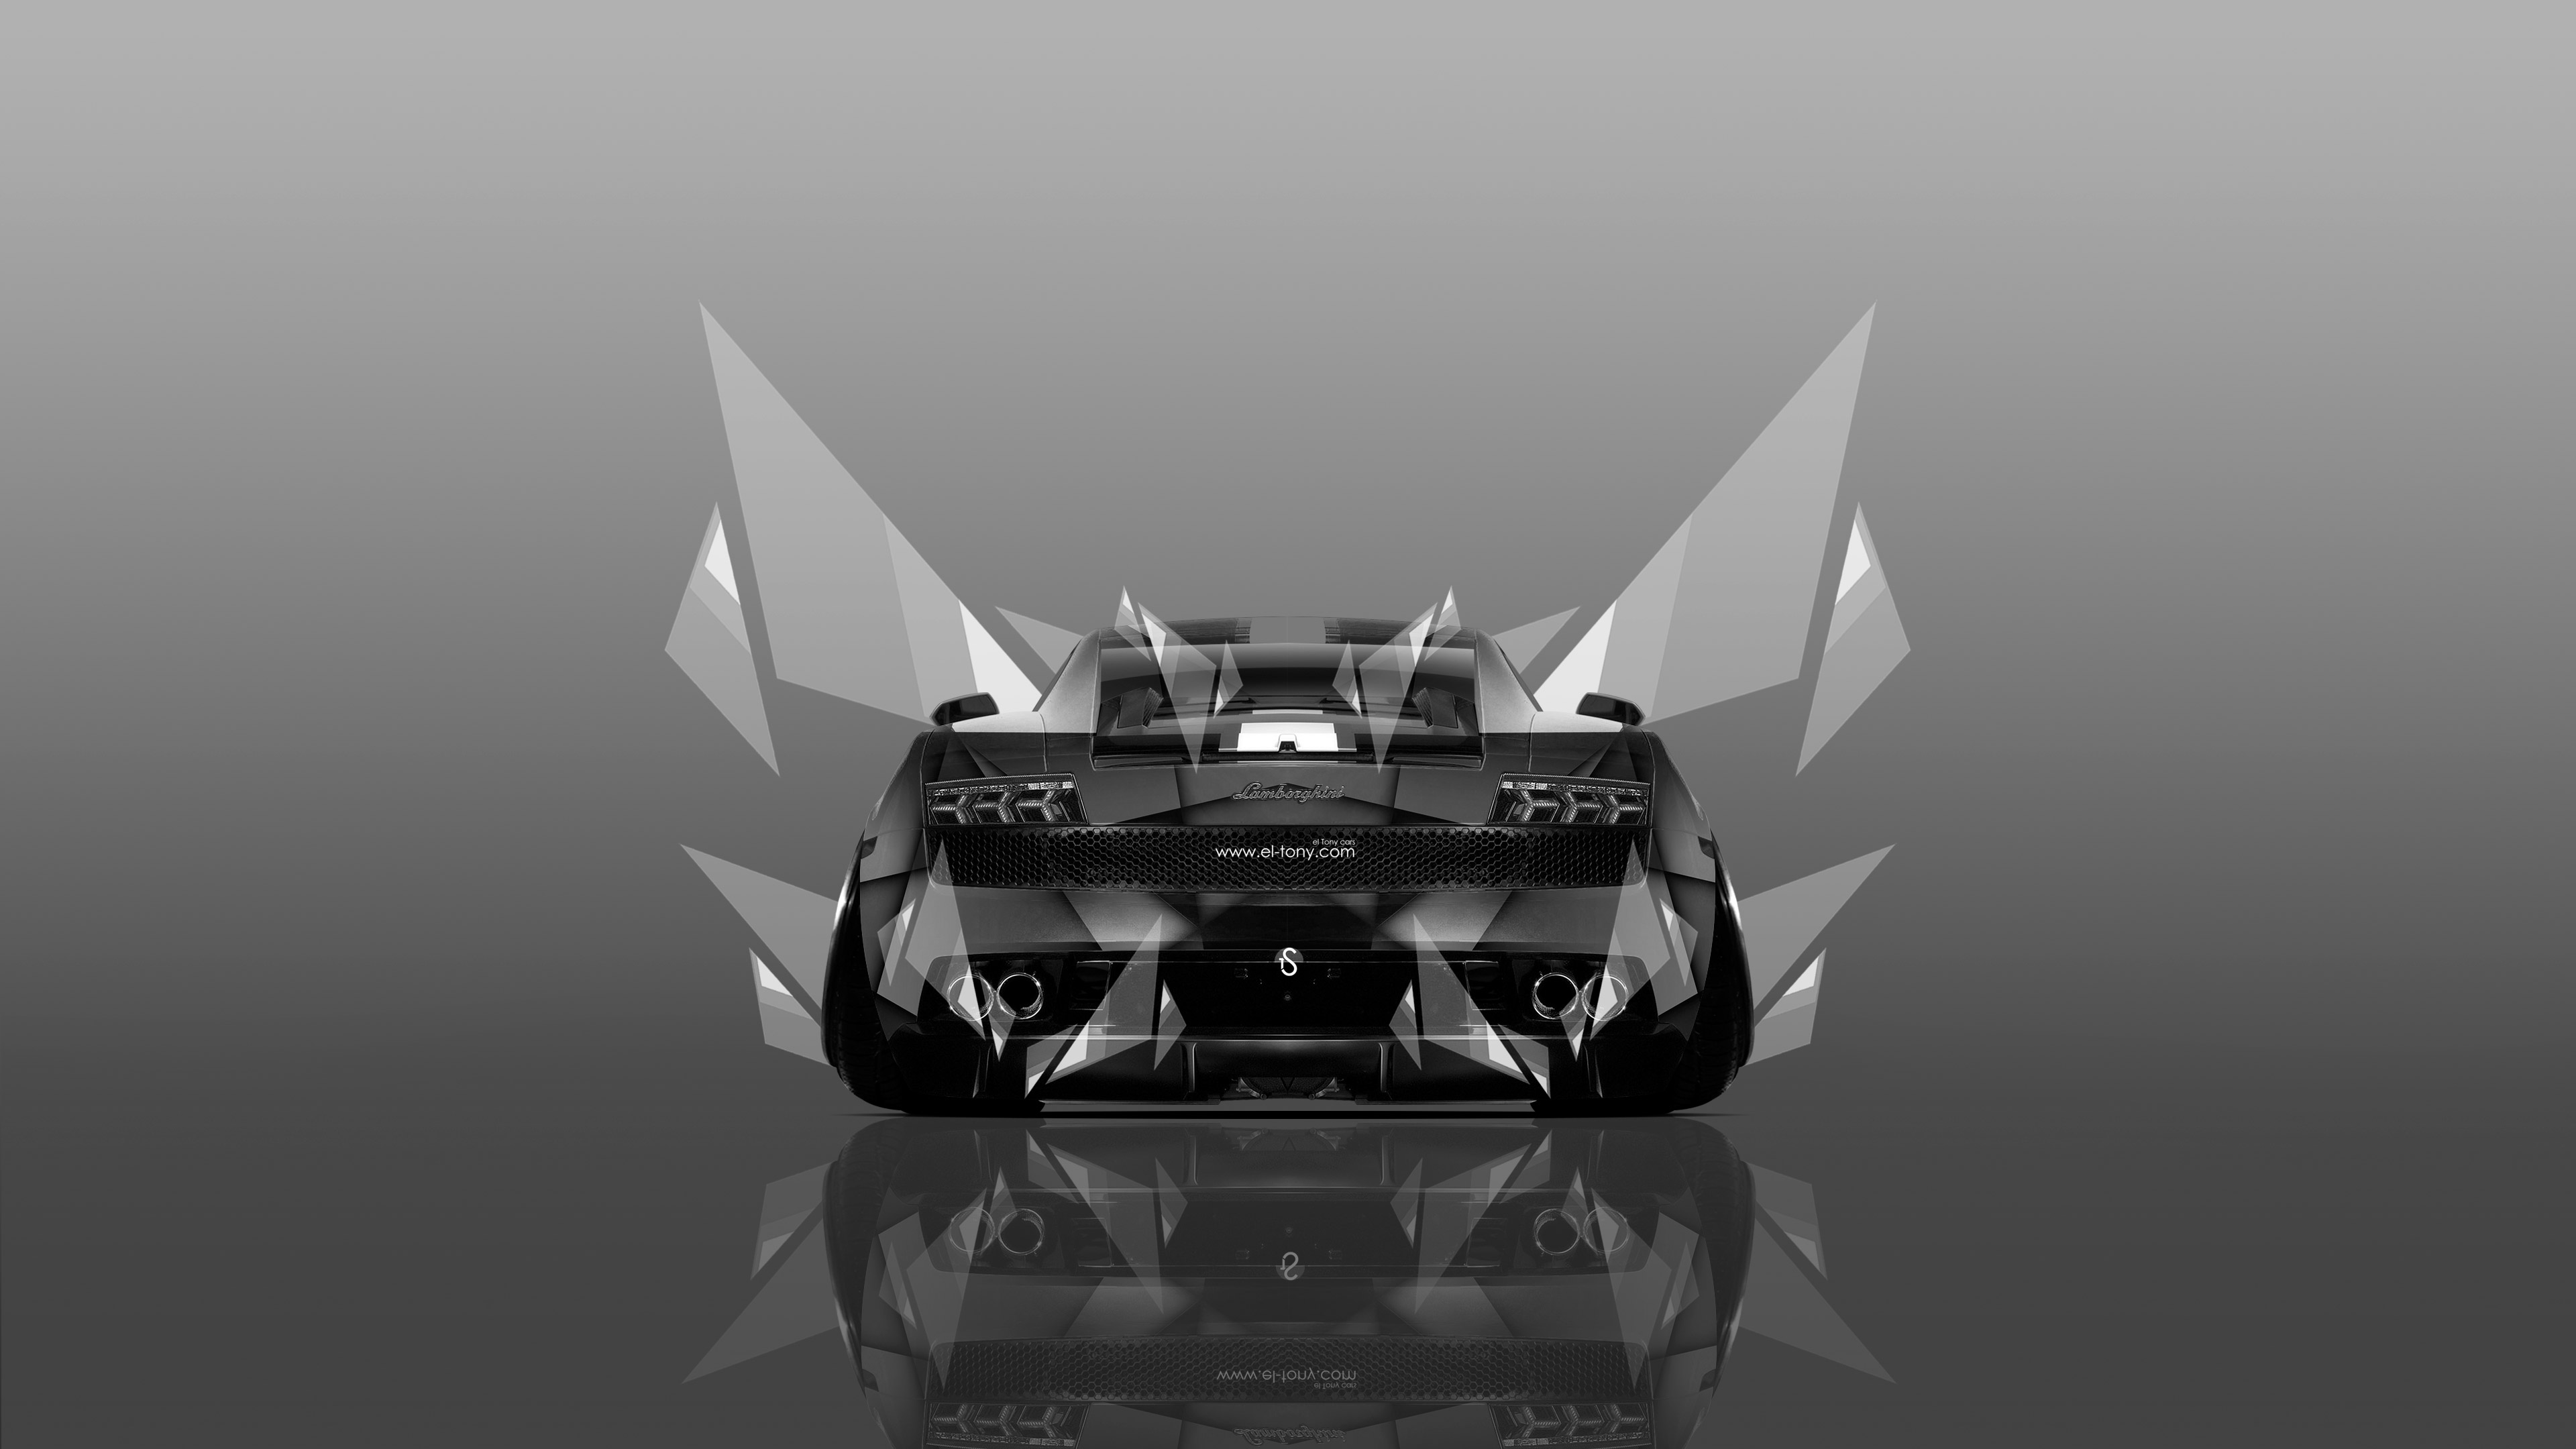 Superieur ... Lamborghini Gallardo Back Abstract Aerography Car 2014 Black  ...